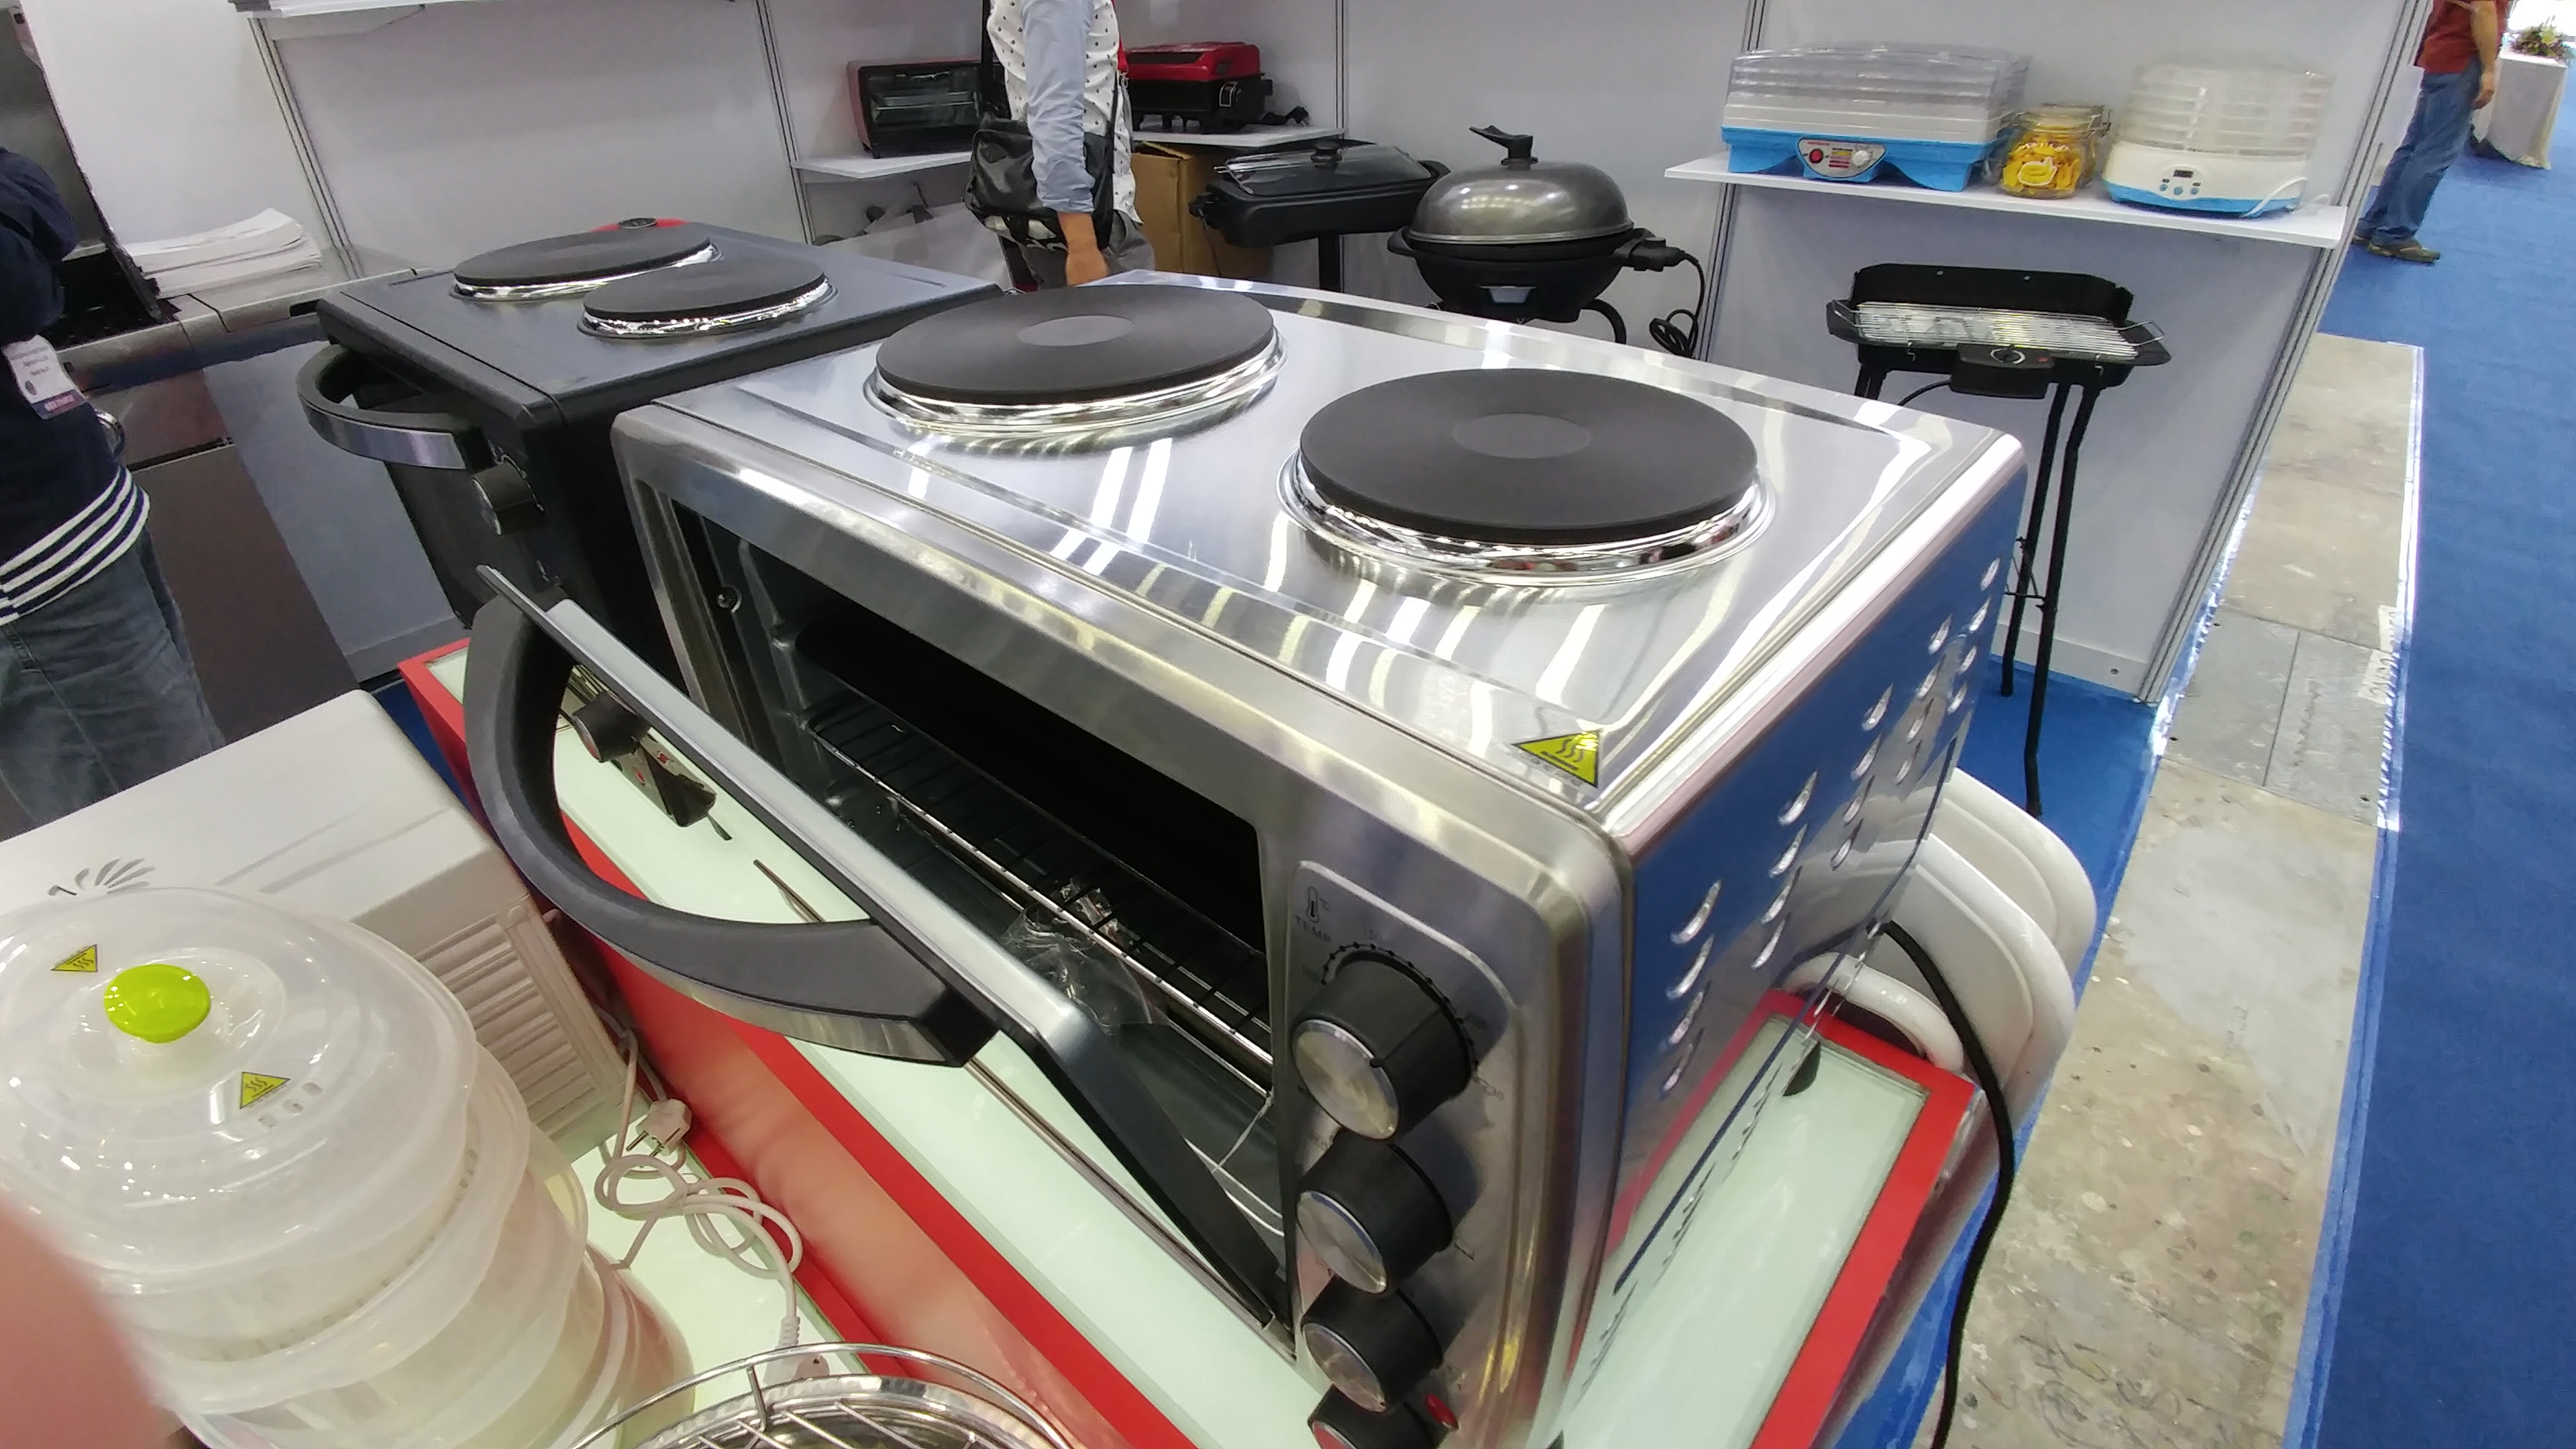 The CE China 2016 show had some pretty cool kitchen appliances for tight spaces. Like this combo toaster oven with two induction cook tops on top. The LG G5 super wide captures stunning environmentals showing a lot of background.